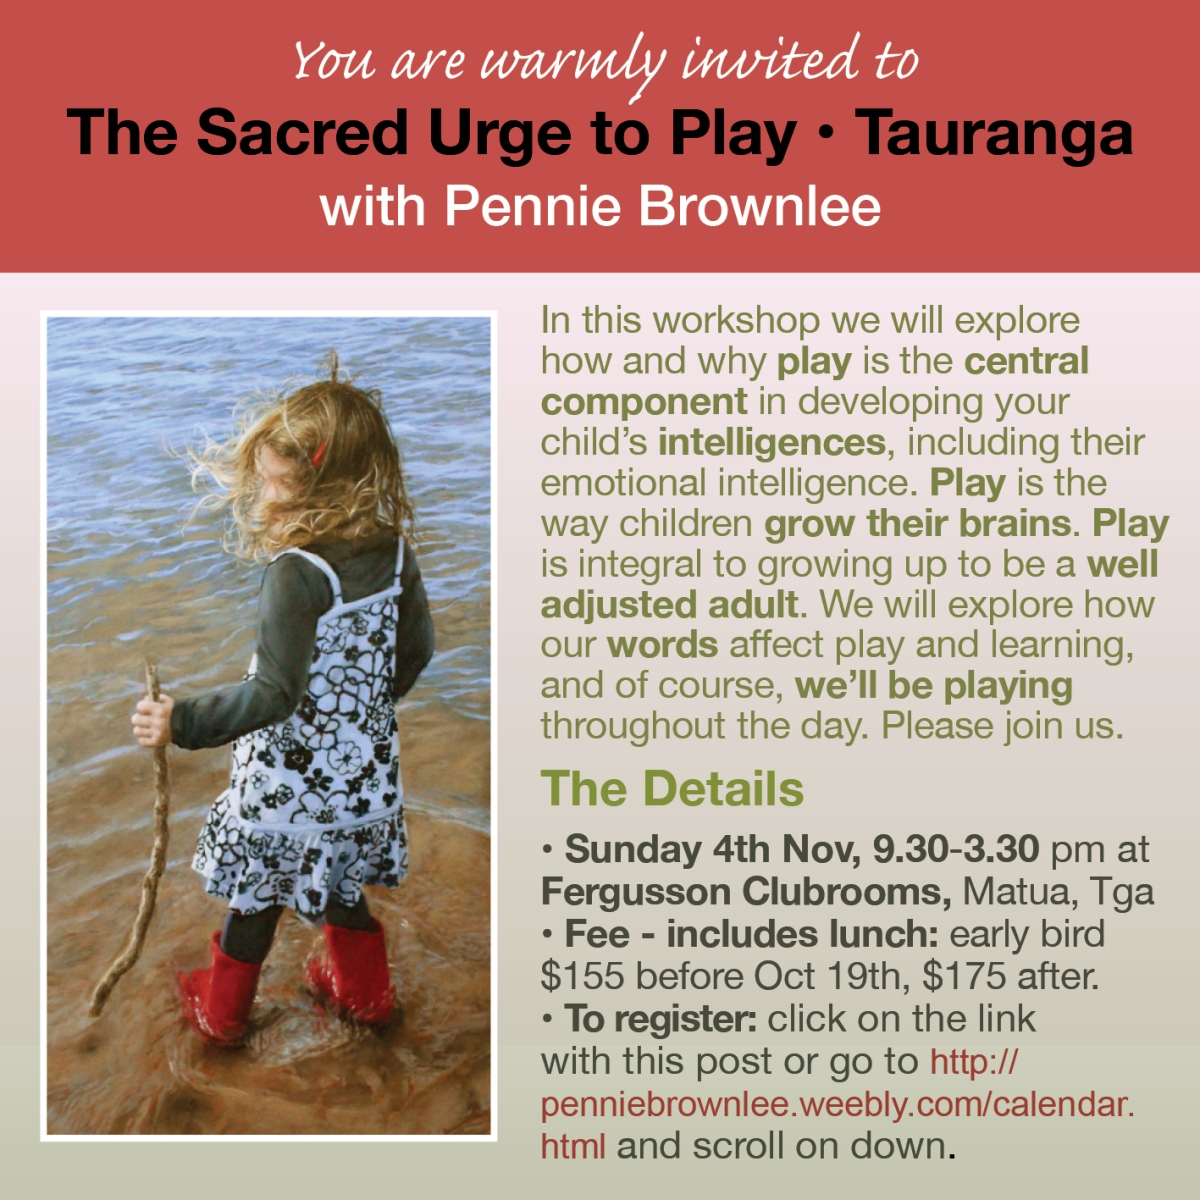 Additional 'Sacred Urge to PLAY' workshop with Pennie Brownlee programmed - Sunday 4 November 2018 - Matua, Tauranga